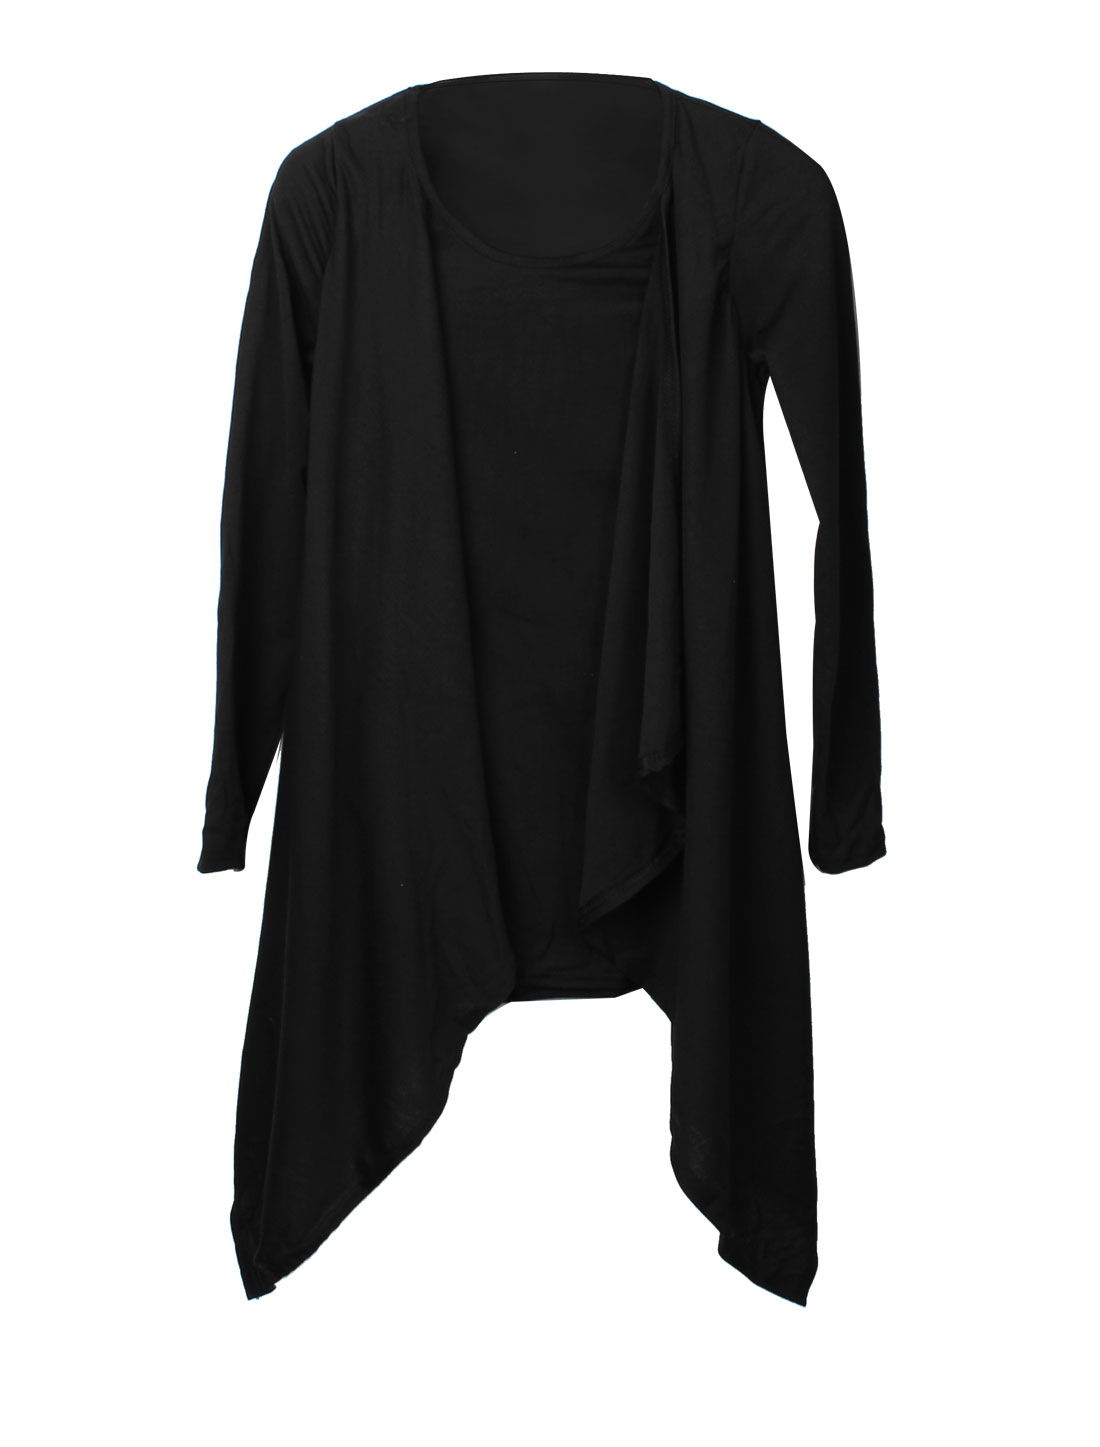 Ladies Long Sleeve Drap Collar Scarf Hem Details Stretch Black Blouse XS